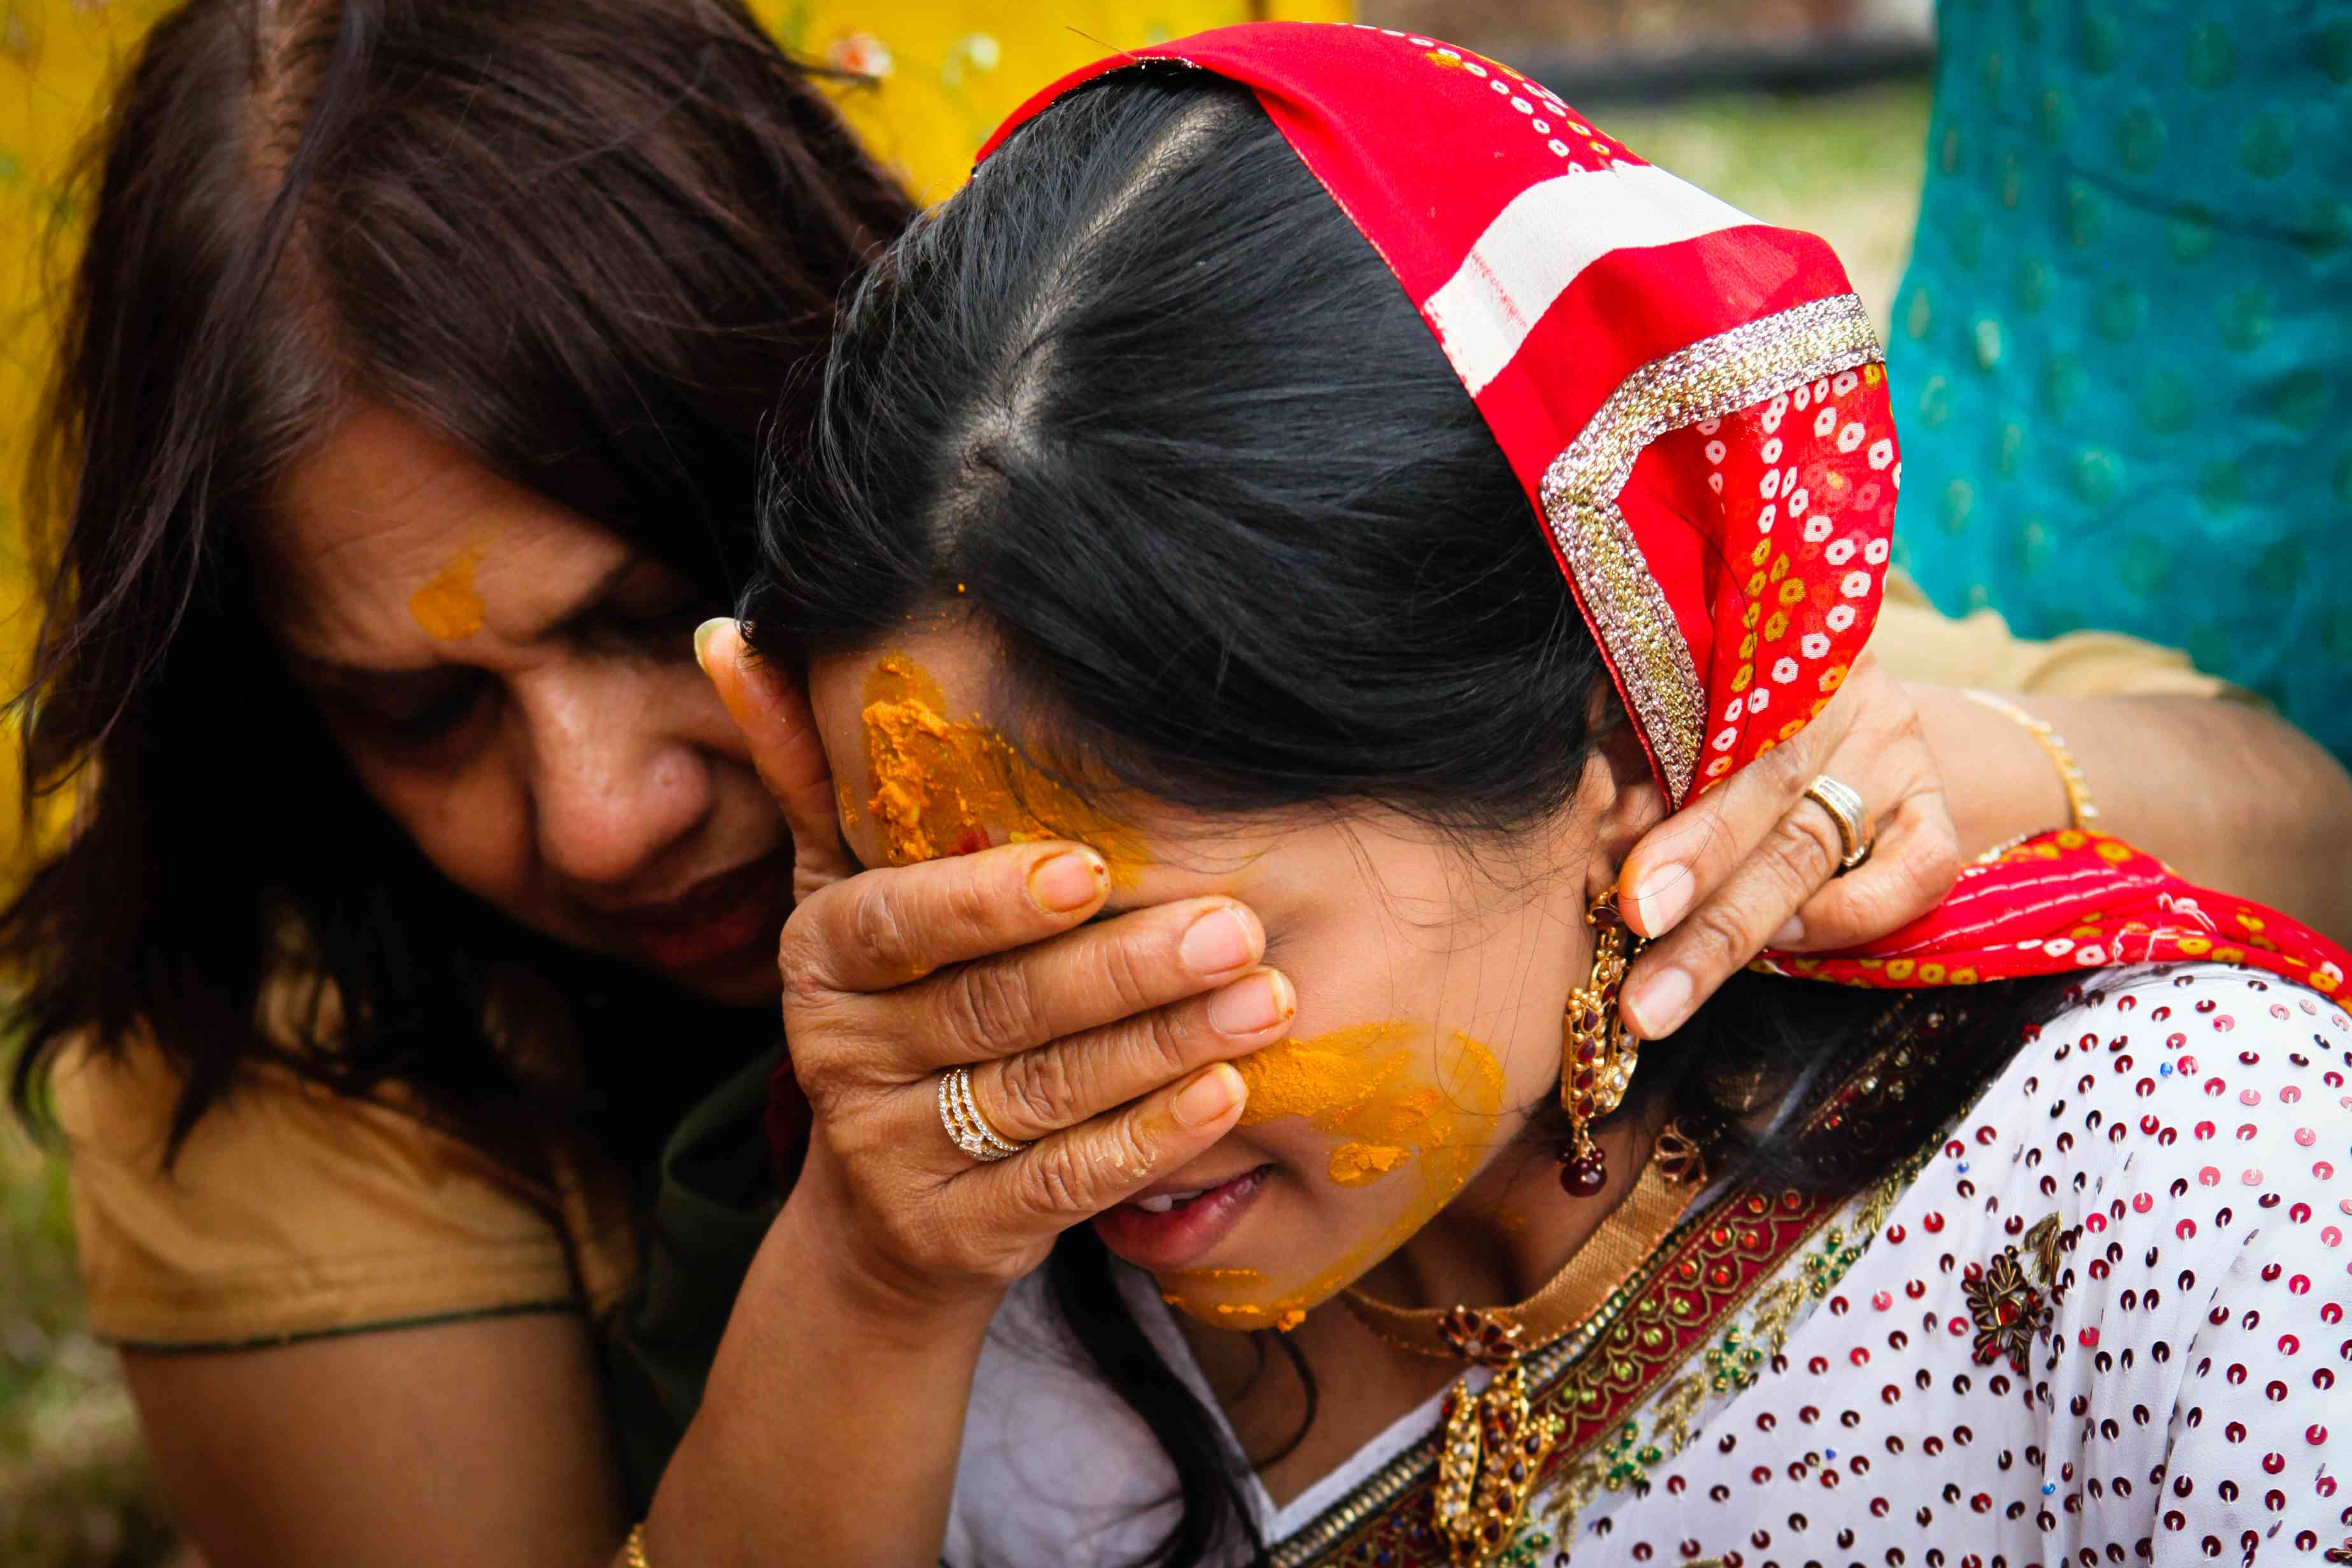 Woman massaging engaged Indian woman's face with turmeric paste during Haladi ceremony